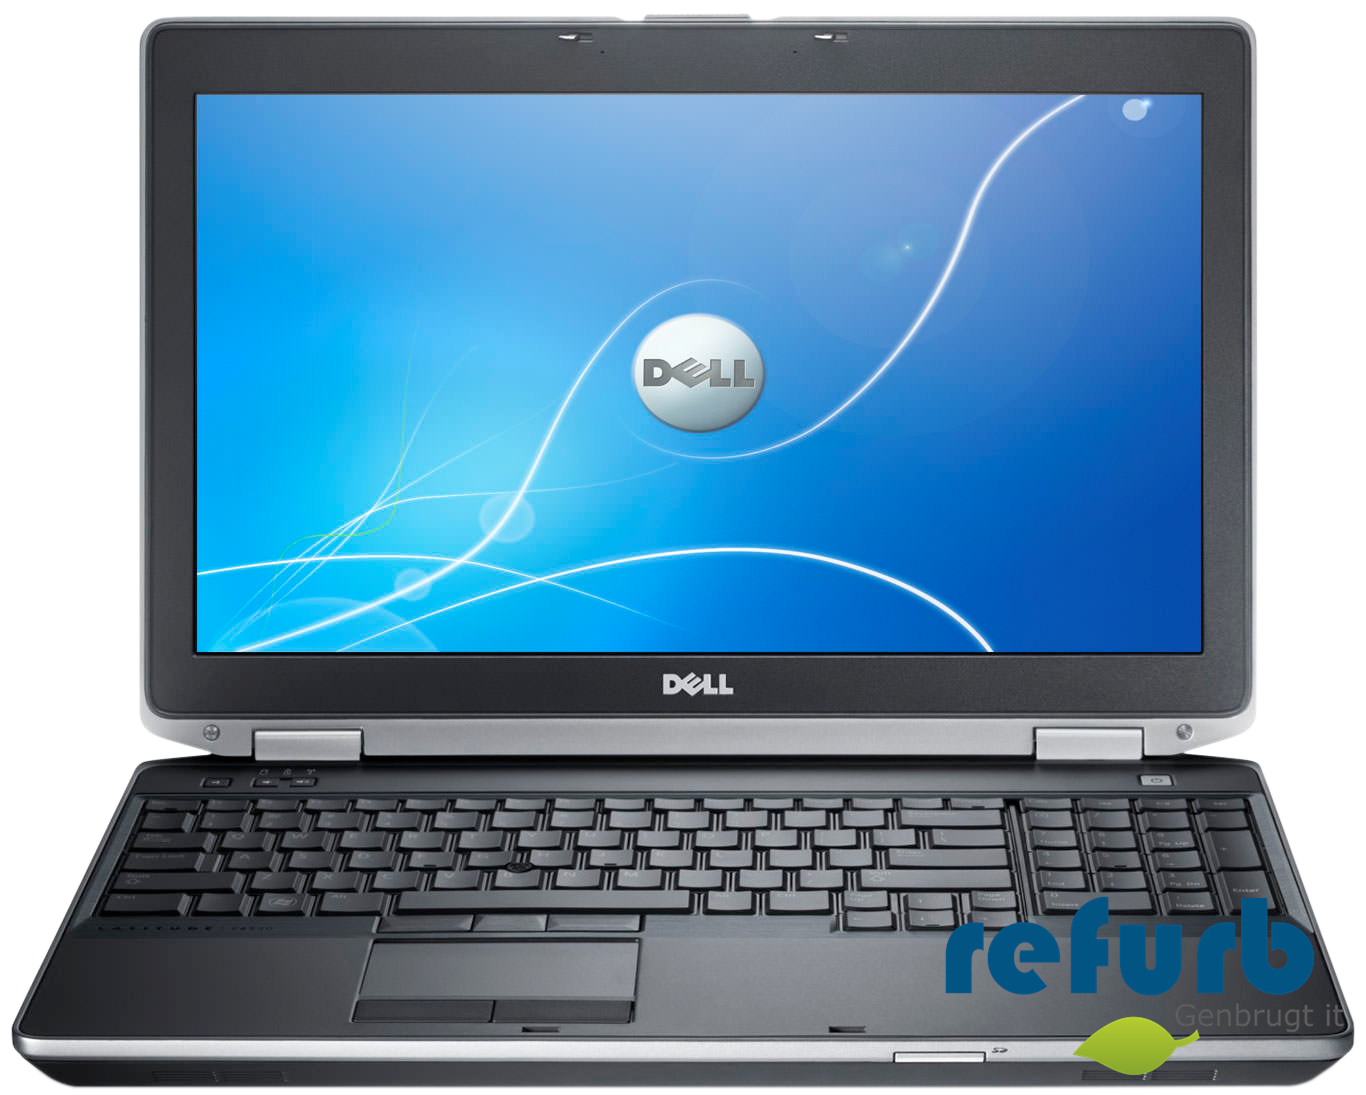 Dell – Dell latitude e6530 fra refurb